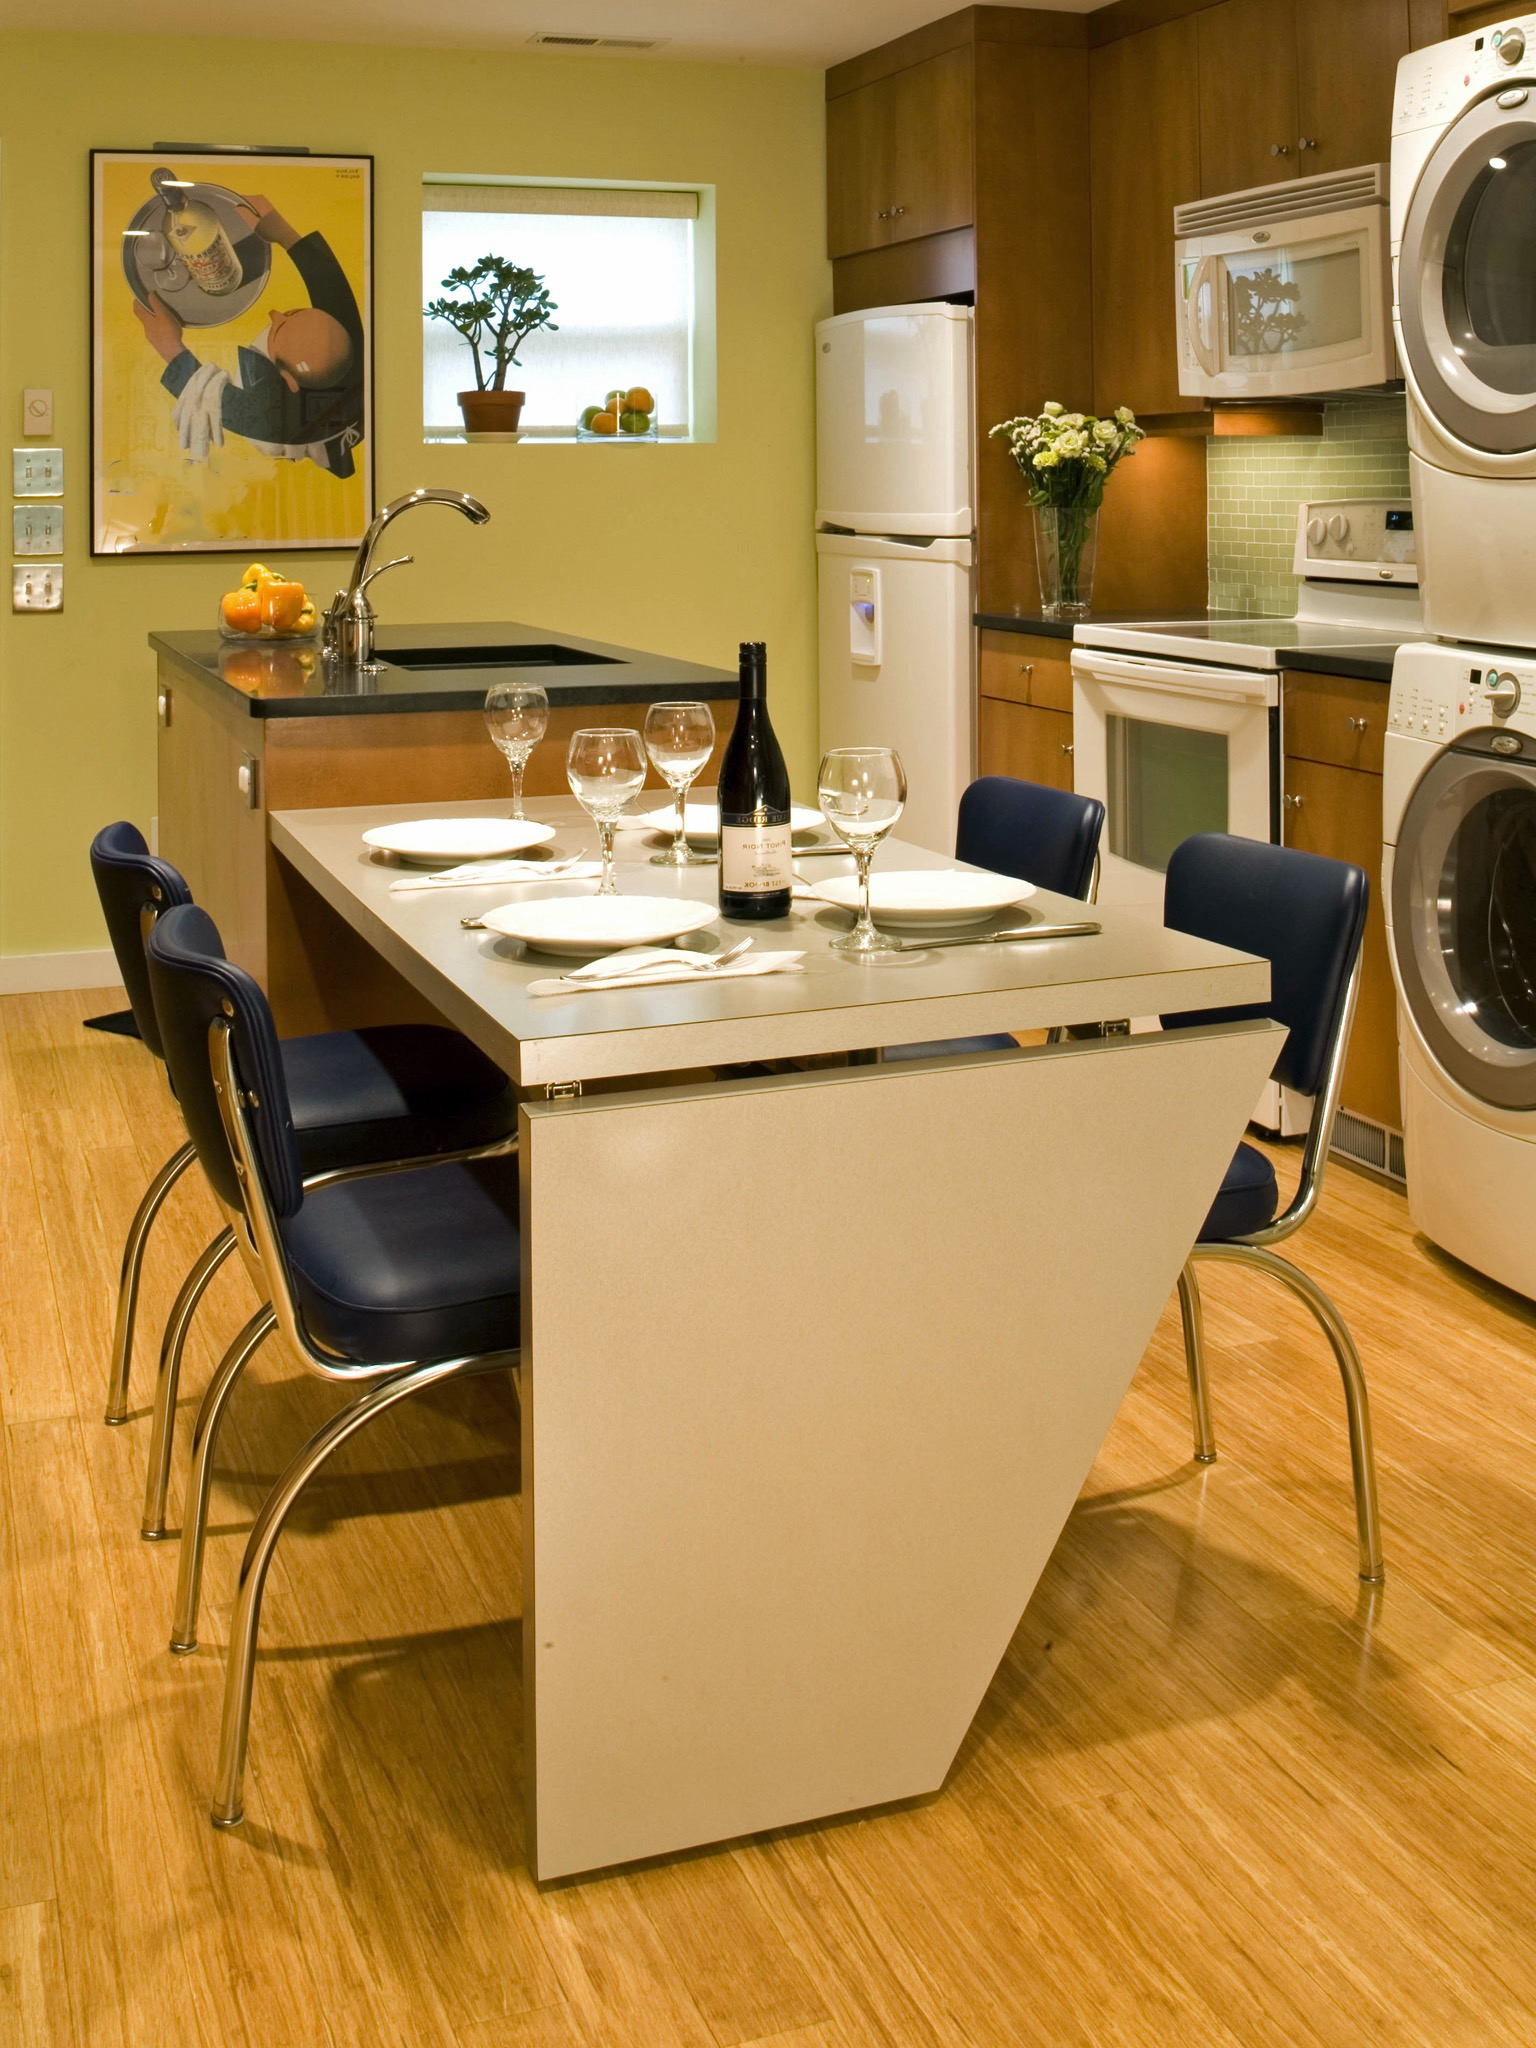 Modern Laundry Room And Kitchen Combo With Modern Dining Table And Chairs (Image 5 of 7)